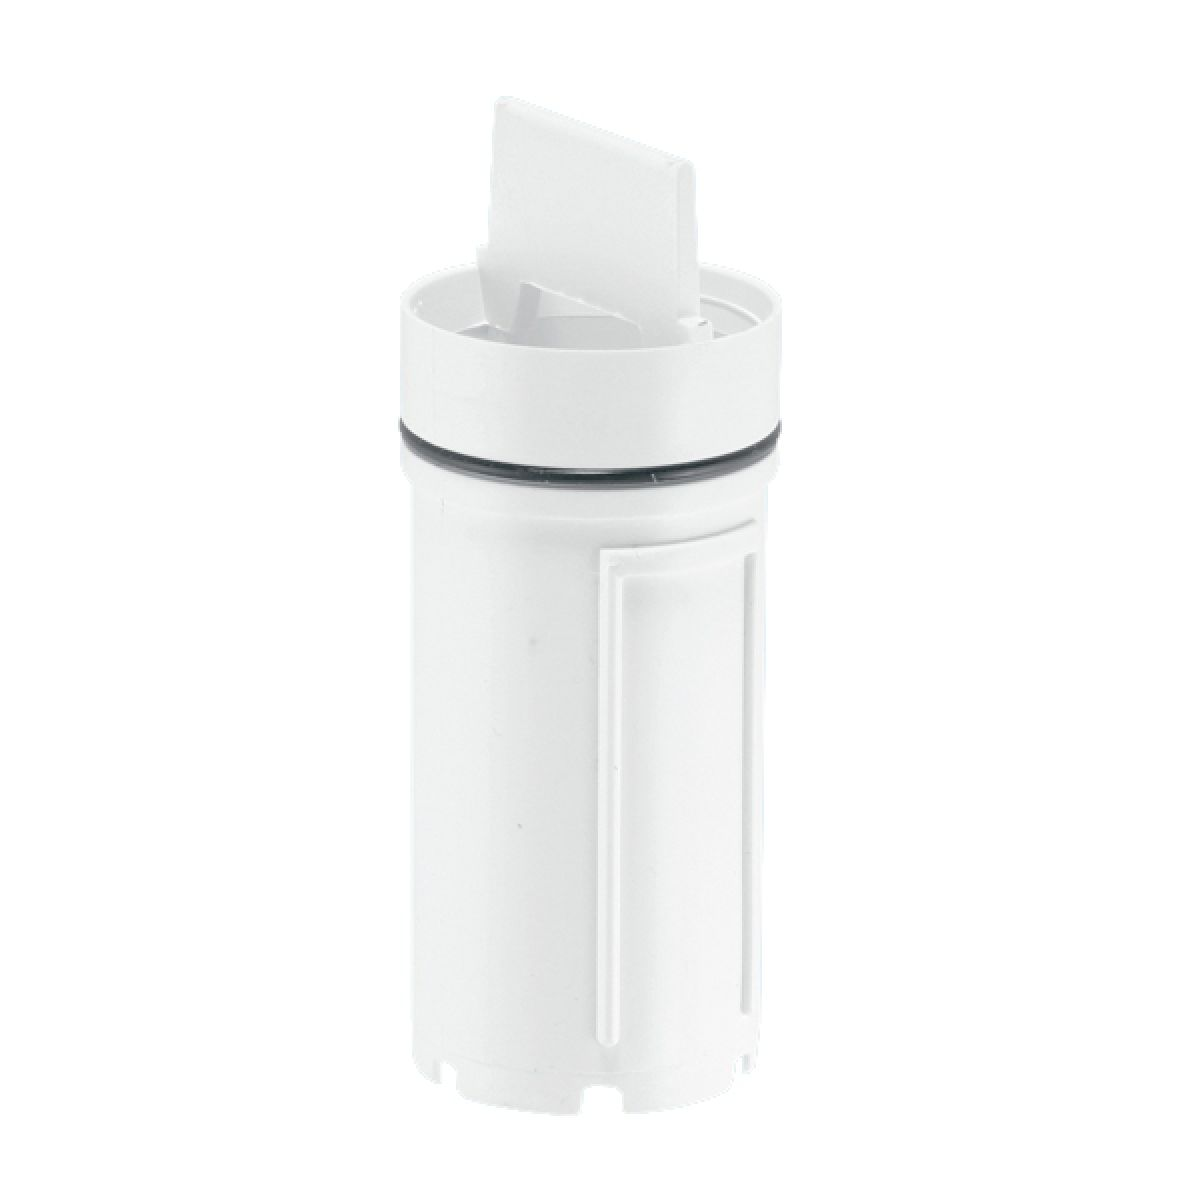 McAlpine Dip Tube for 19mm Water Seal Shower Traps